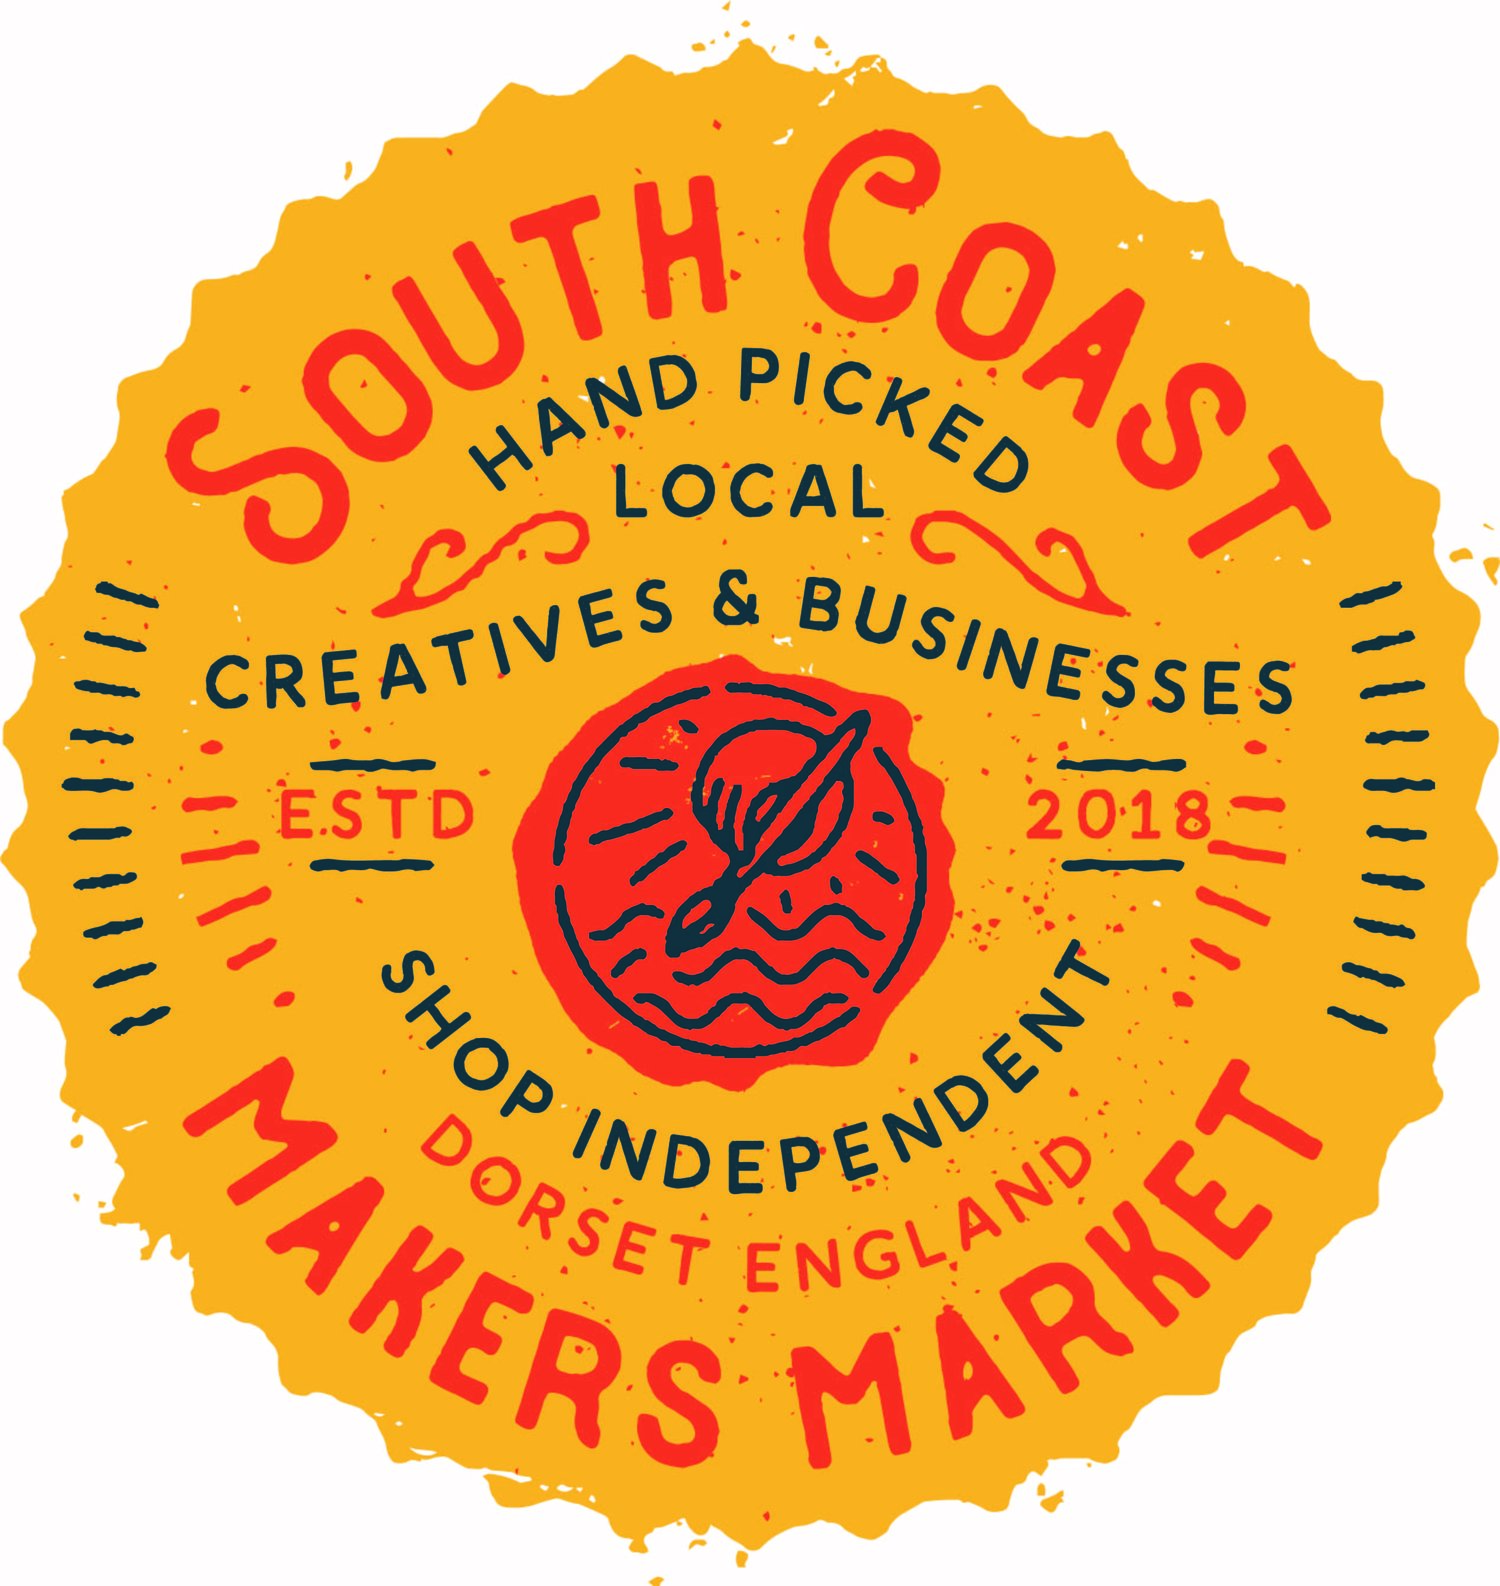 South Coast Makers